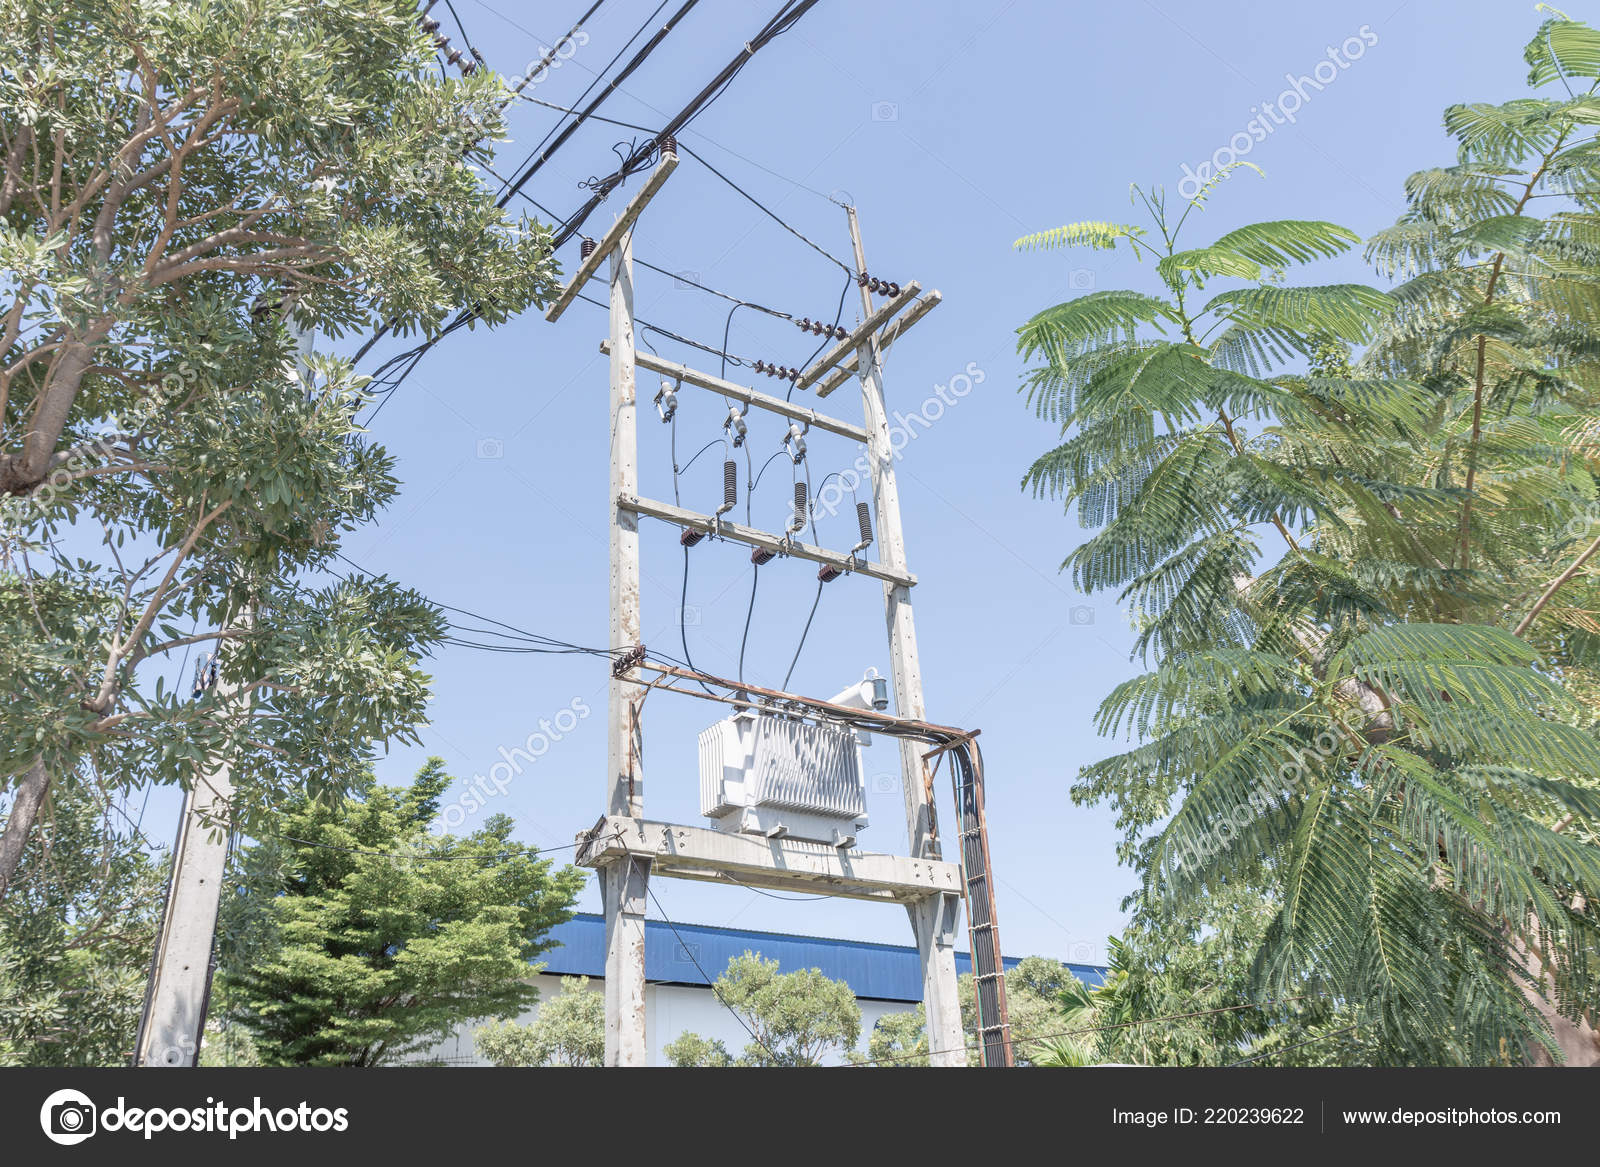 hight resolution of big transformer installed on the pole with electrical wiring stock image